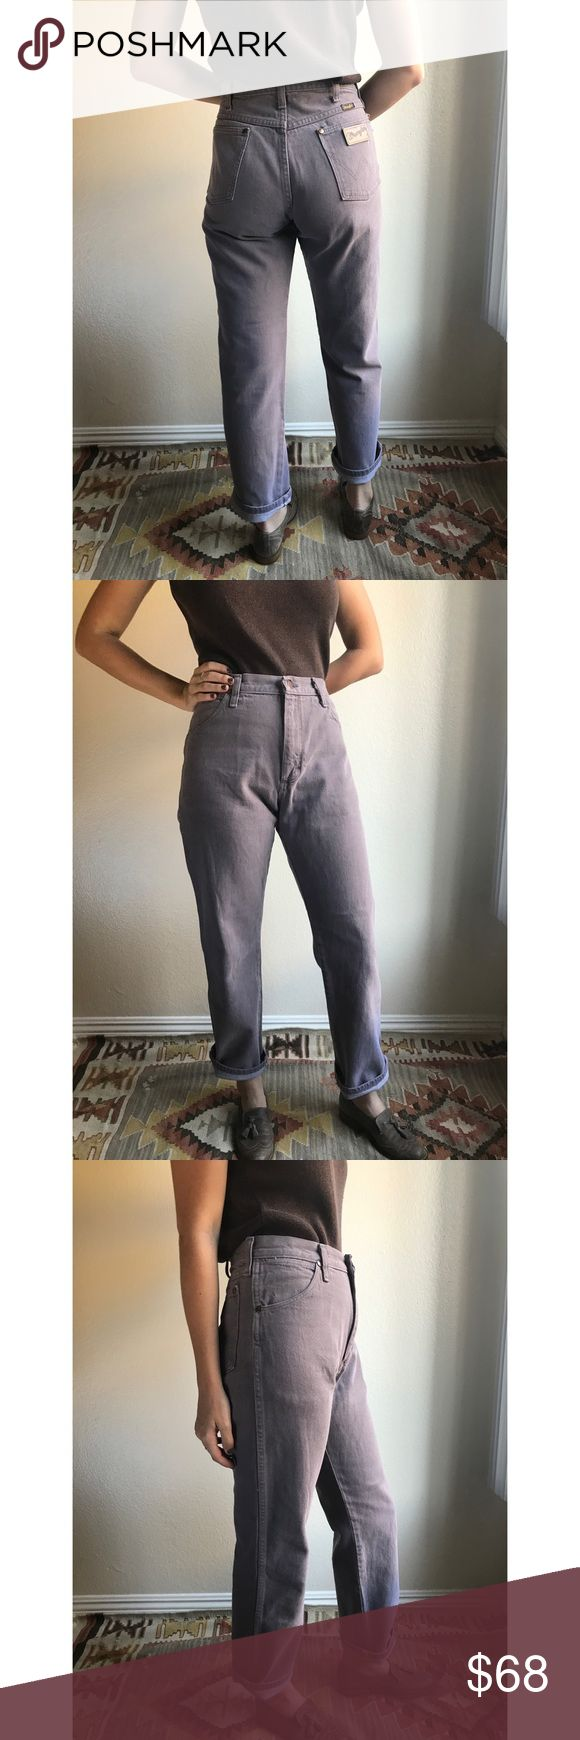 "[vintage] dusty purple Wrangler mom jeans So hard to let go of these, but they just don't fit anymore. Vintage Wrangler jeans with super high waist and classic bum patch styling. RARE dusty purple-grey color, I've never seen another, and in amazing condition with minimal distressing. Looks amazing with both gold/brown tones as well as black. Marked size 31/30, use measurements: waist 14.5"", rise 11"", hip 21"", inseam 29"". Let me know if you want a raw hem😍. Seen pinned on 5'6"" model with 26""…"